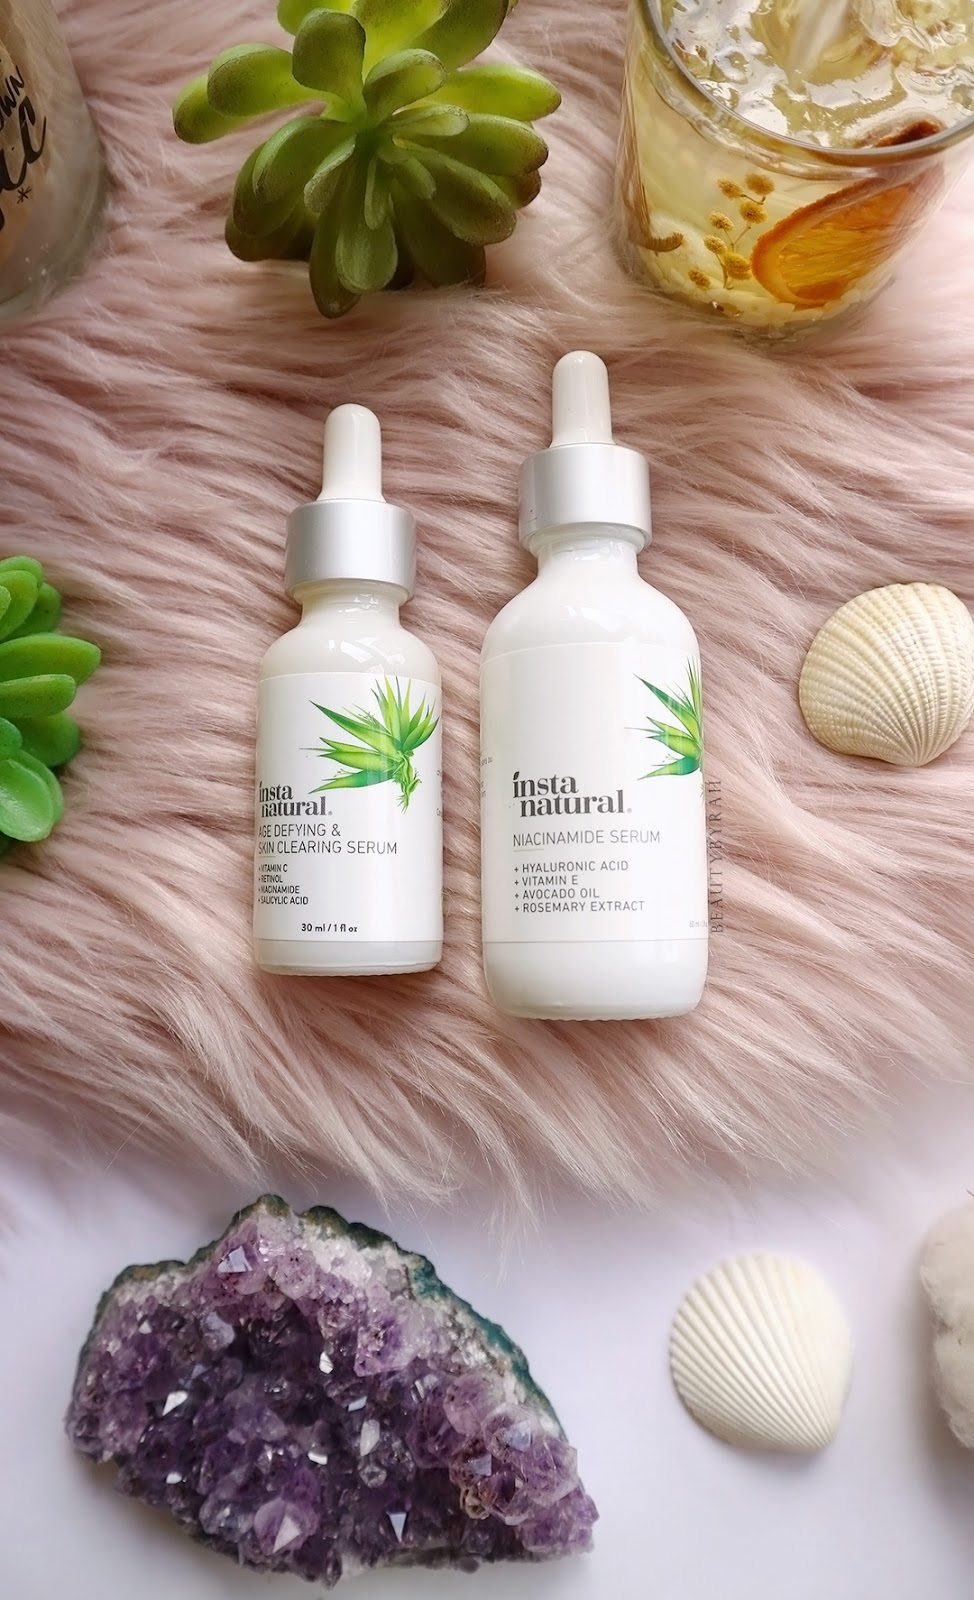 InstaNatural Age defying and skin clearing serum and niacinamide serum review